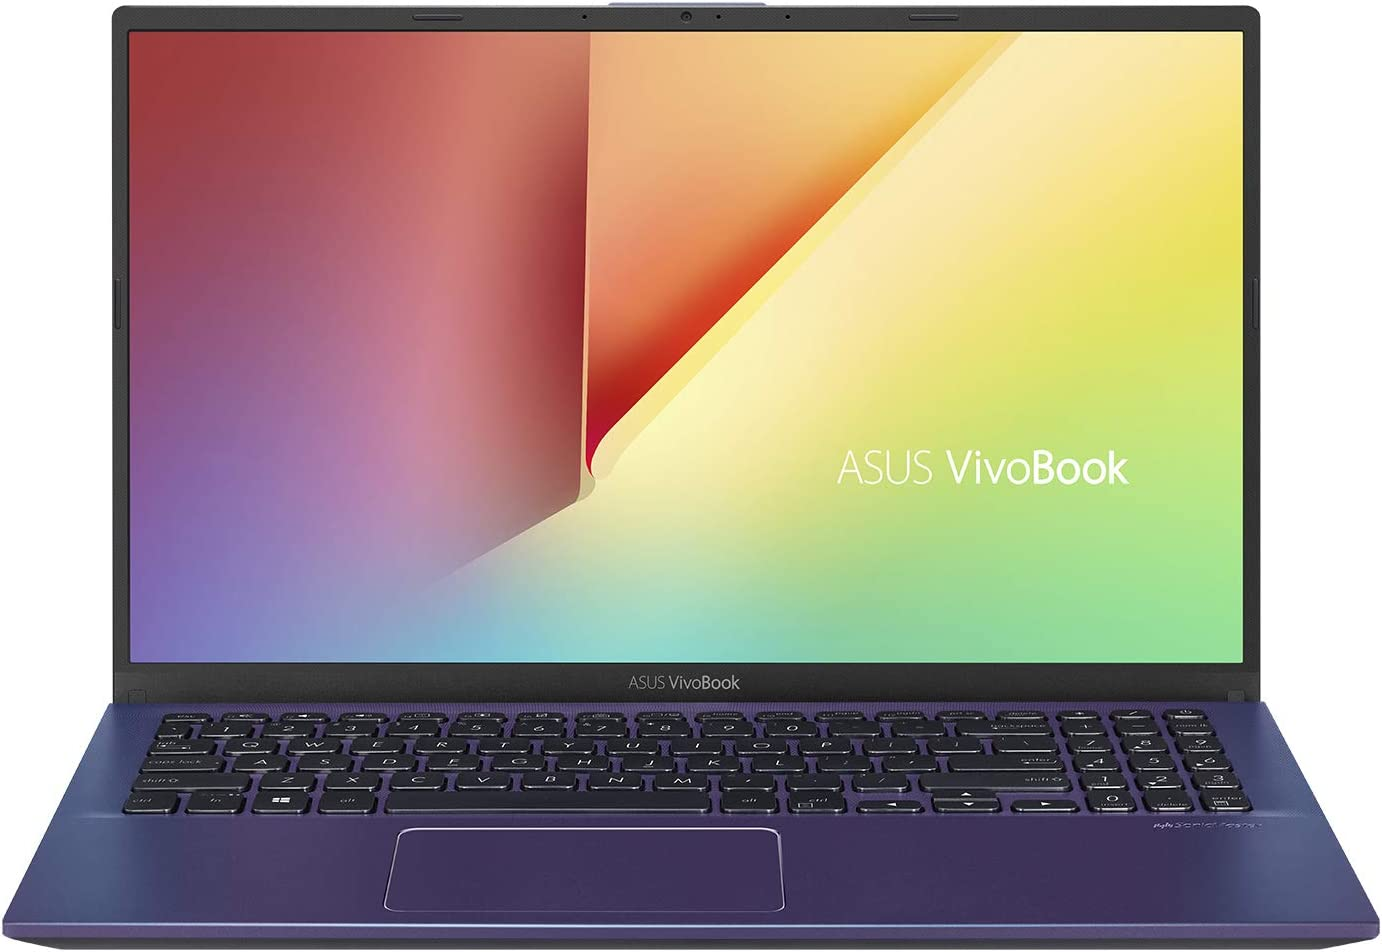 "ASUS VivoBook 15 Thin and Light Laptop, 15.6"" Full HD, AMD Quad Core R5-3500U CPU, 8GB DDR4 RAM, 128GB SSD + 1TB HDD, AMD Radeon Vega 8 Graphics, Windows 10 Home, F512DA-EB55-BL, Peacock Blue"